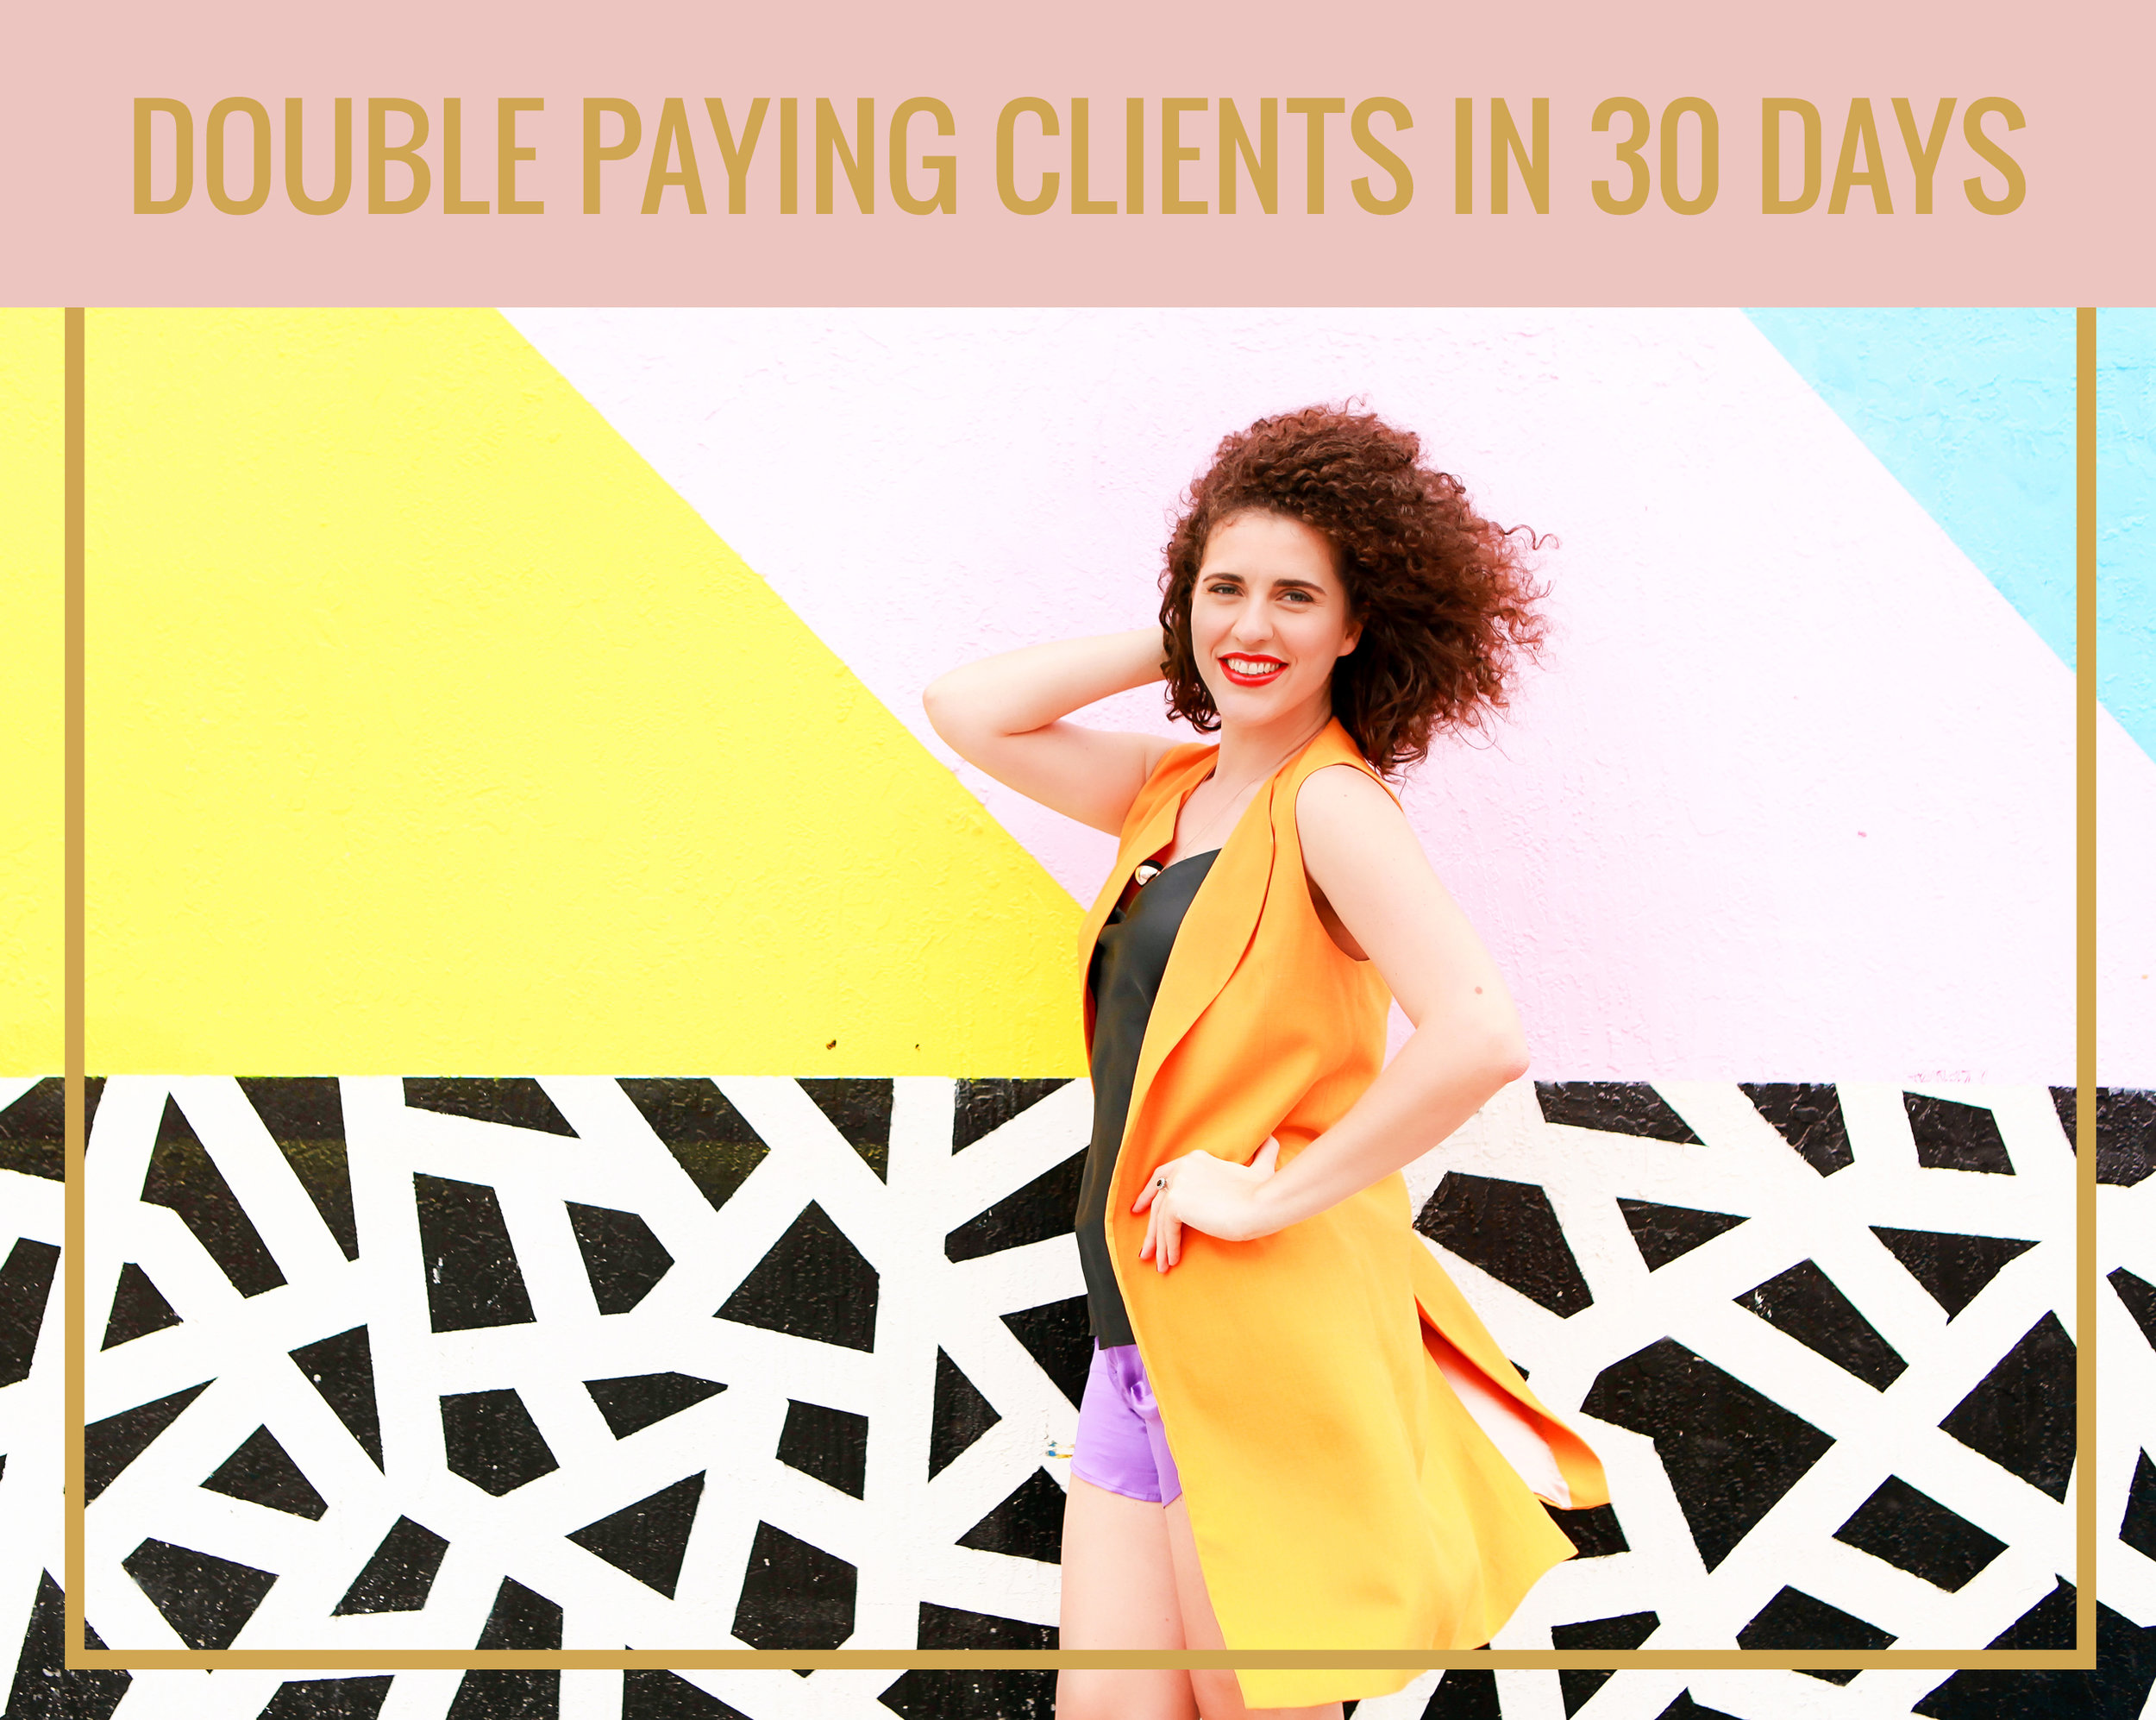 DOUBLE-PAYING-CLIENTS-IN-30-DAYS (1).jpg